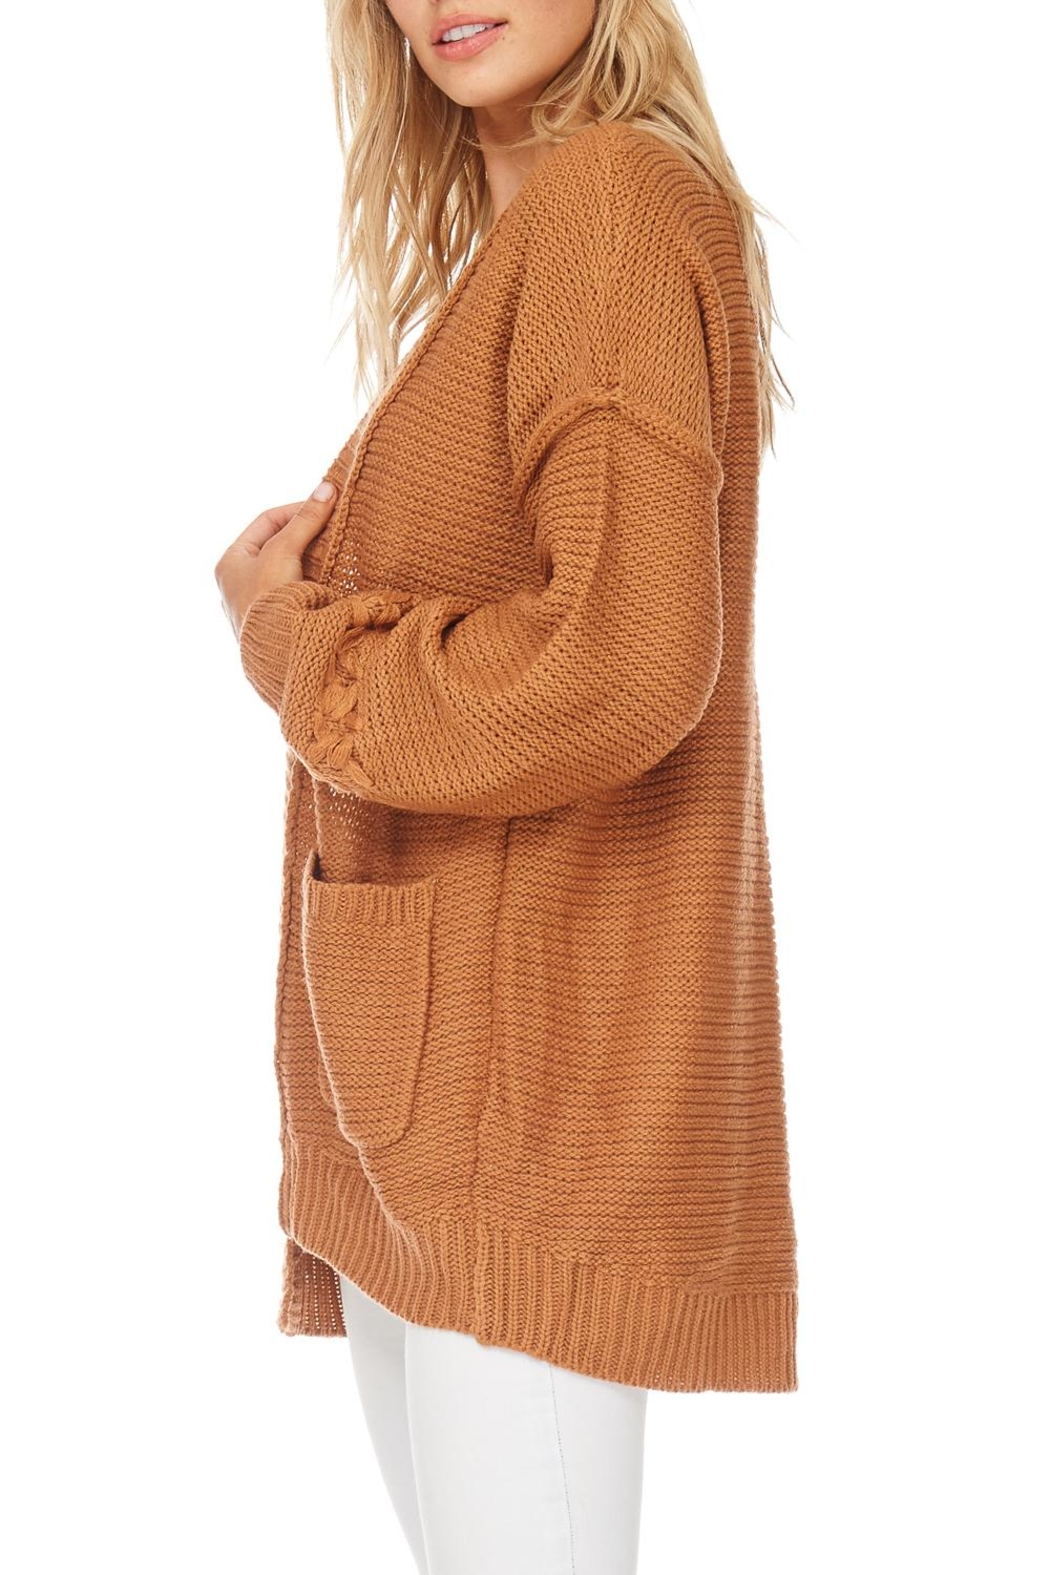 LoveRiche Solid Knit Sweater Cardigan - Back Cropped Image